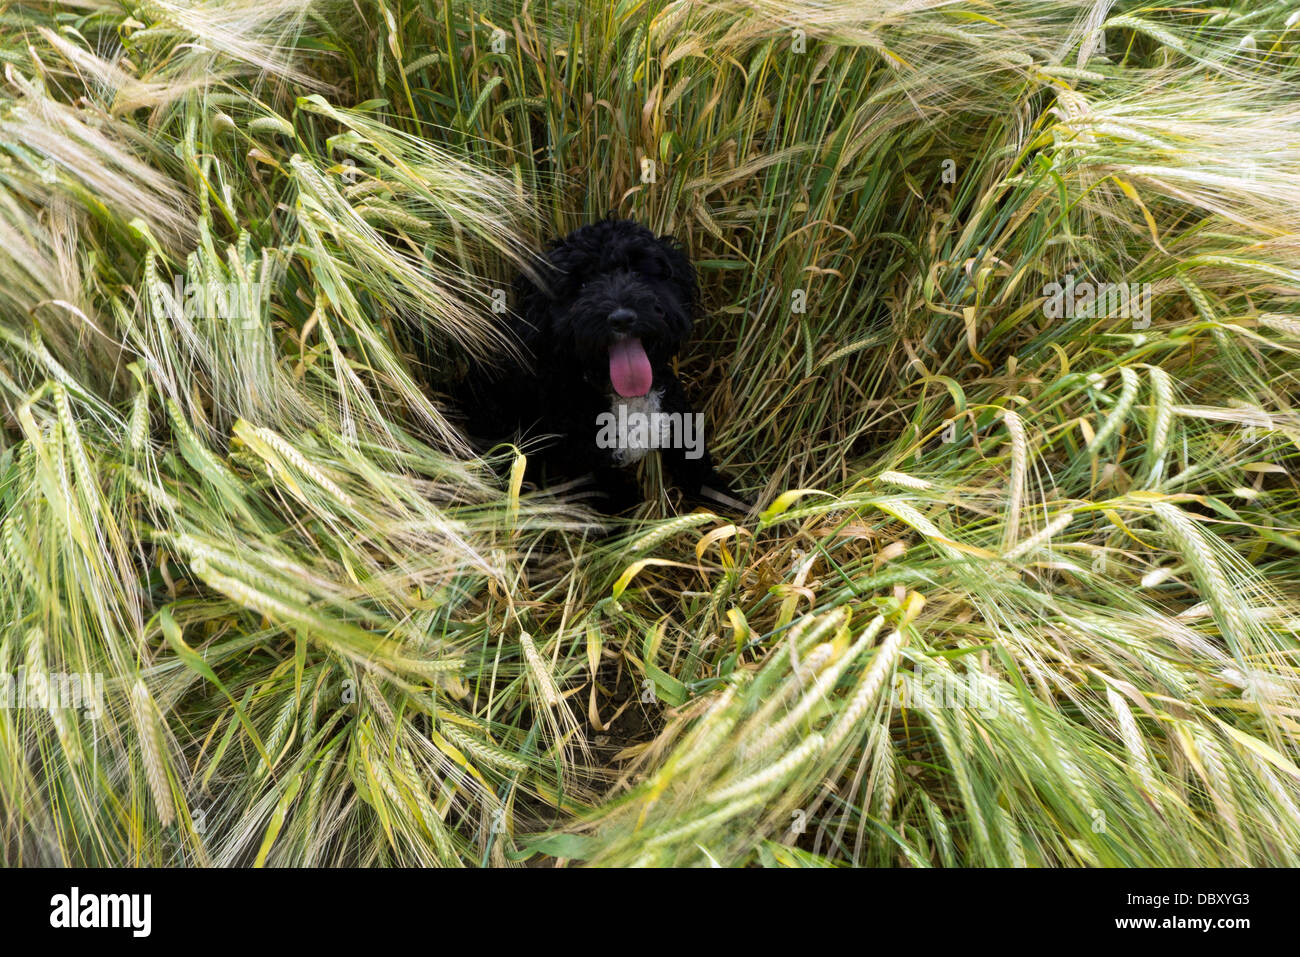 Dog sitting in a field - Stock Image